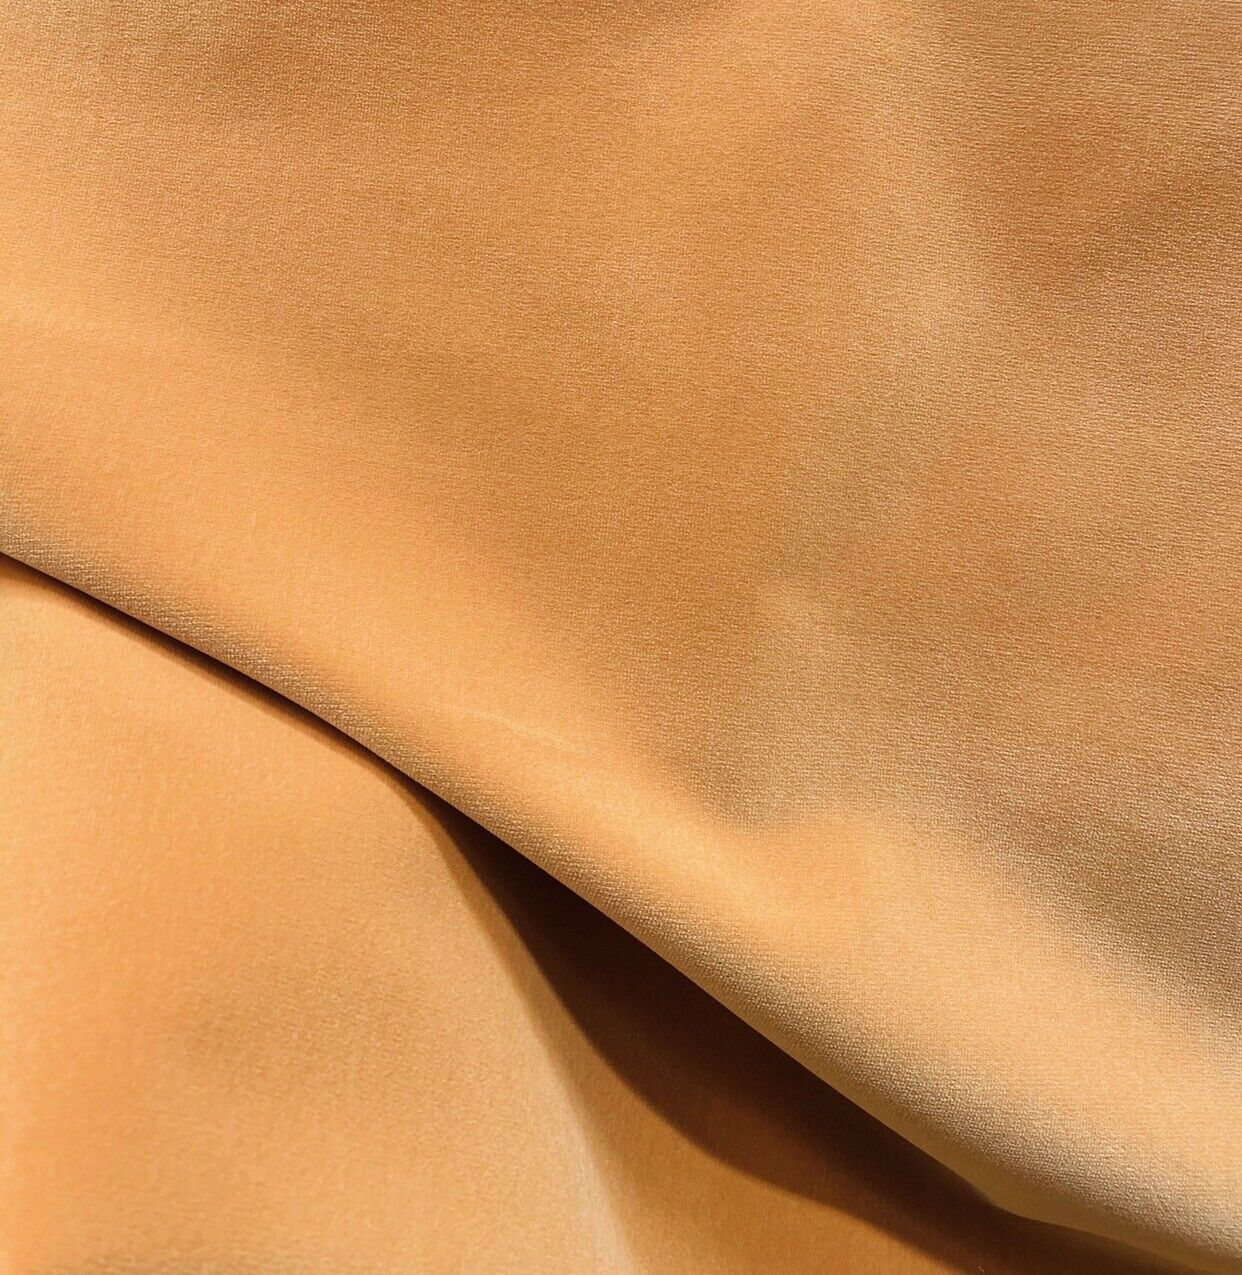 NEW! Prince Oliver - Designer 100% Cotton Made In Belgium Upholstery Velvet Fabric - Icy Pumpkin